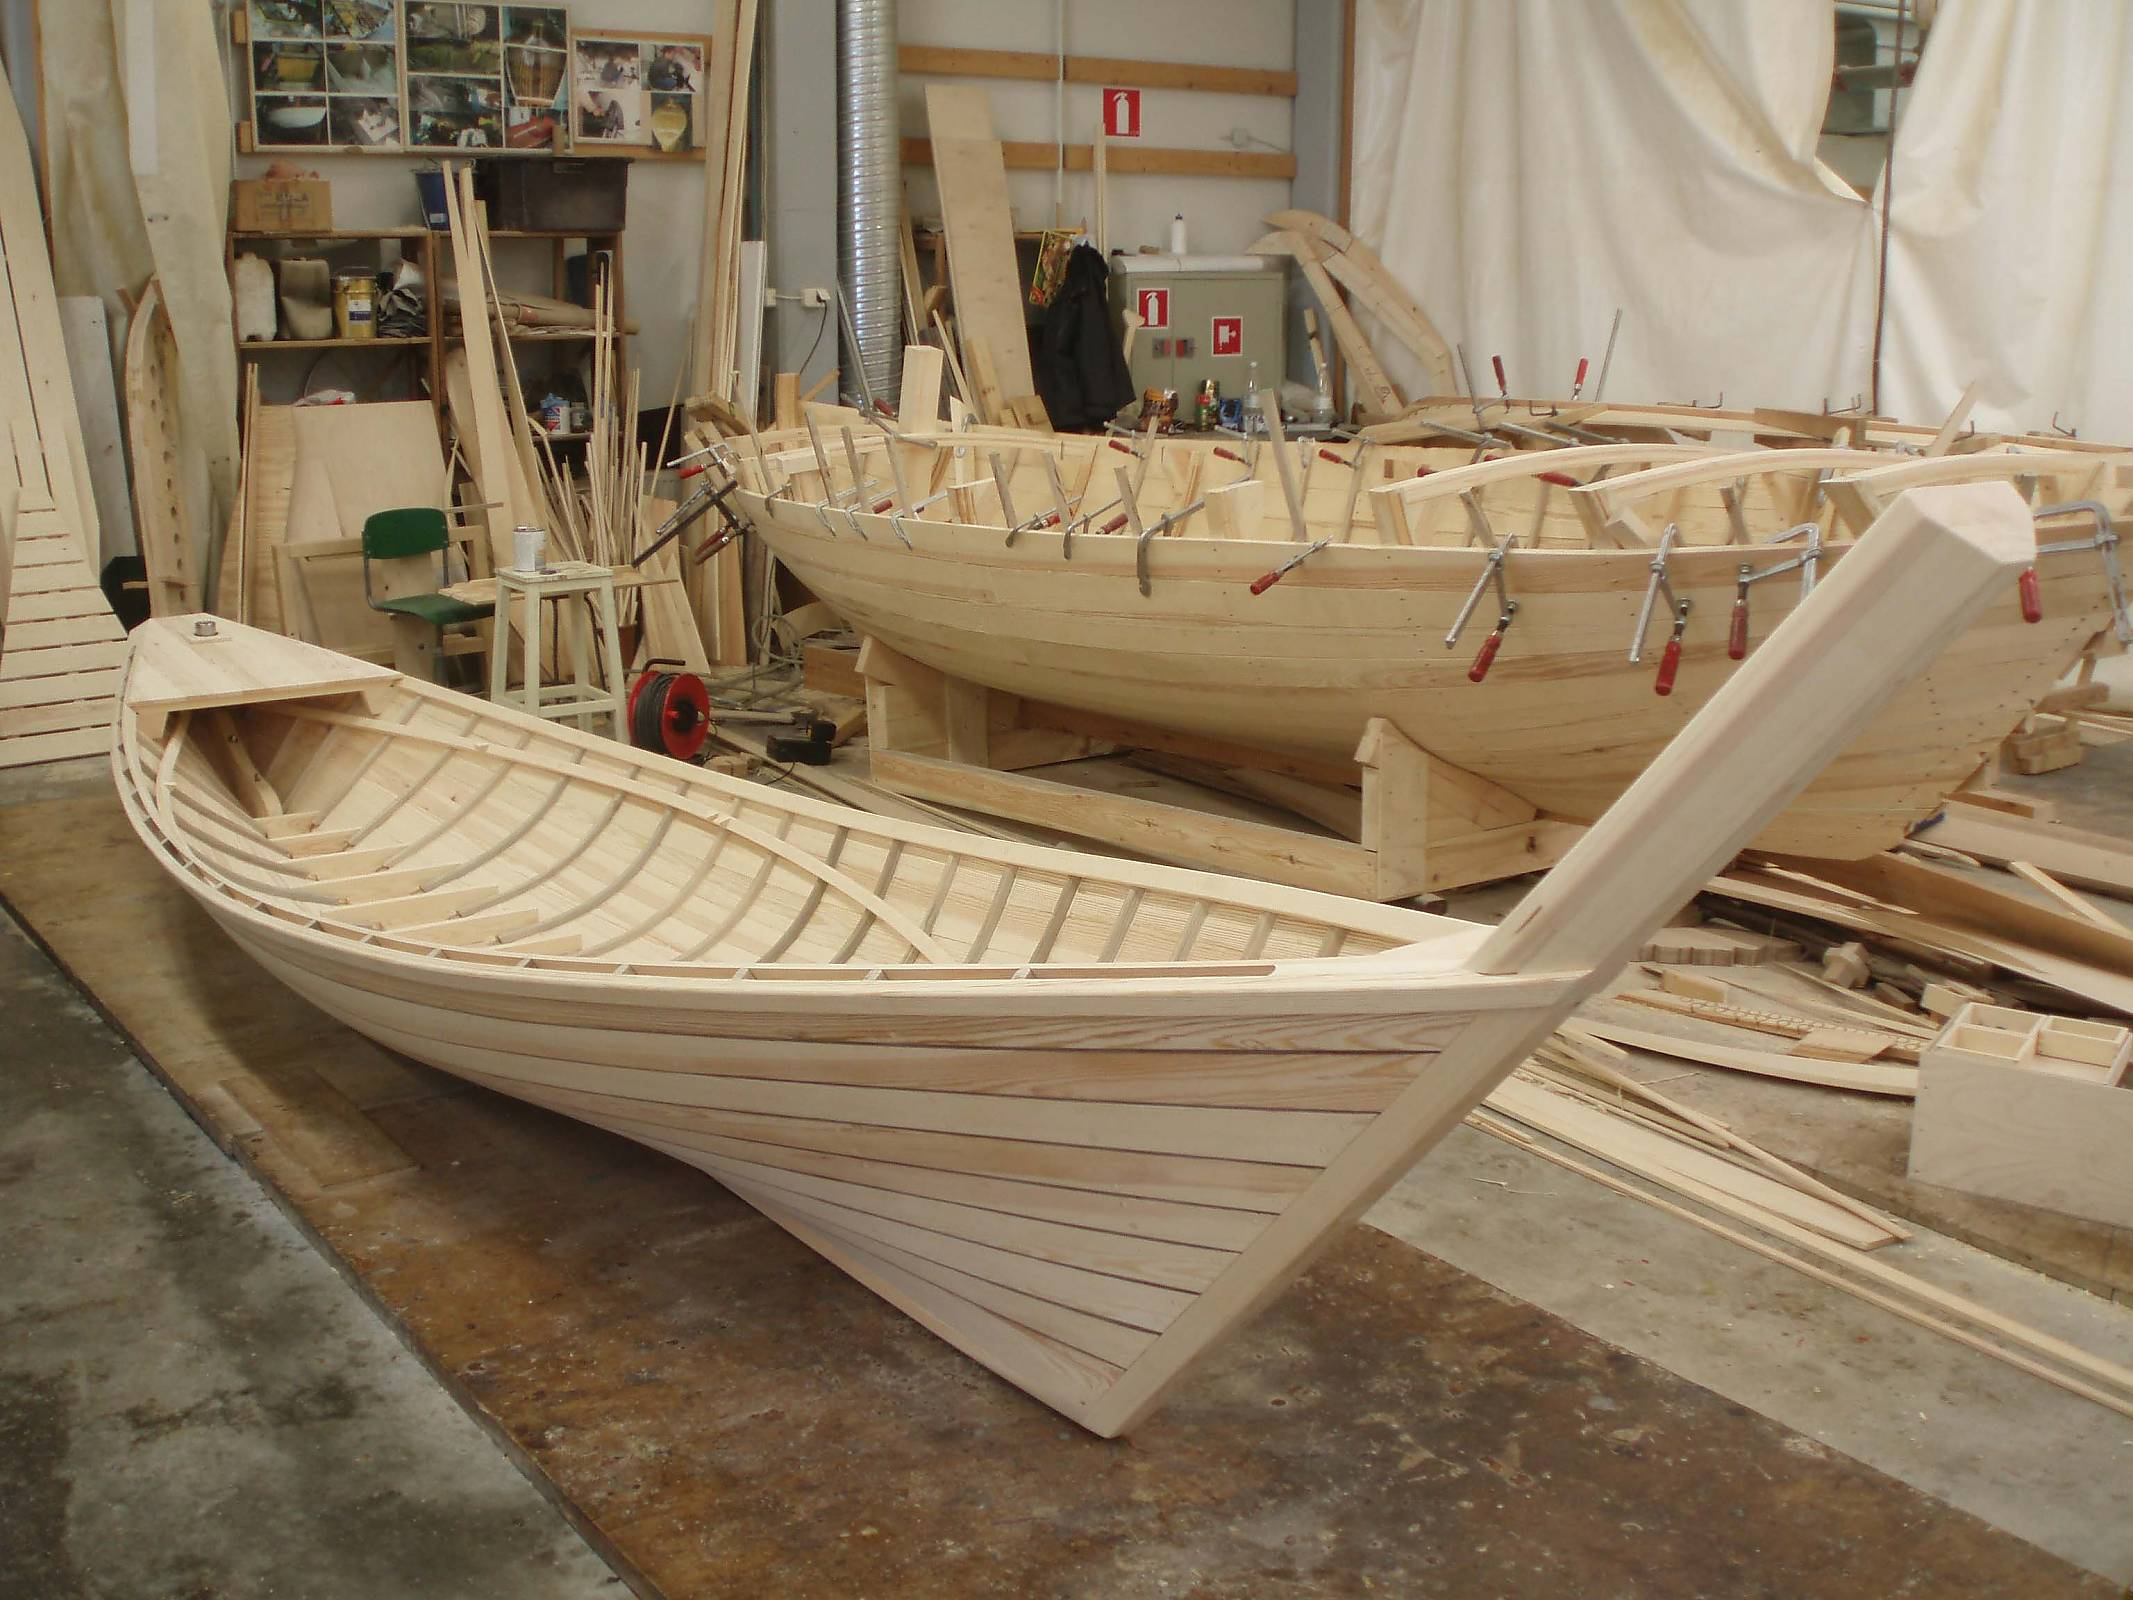 Home built jet dinghy s from new zealand boat design forums - 001 Thai Boat Jpg